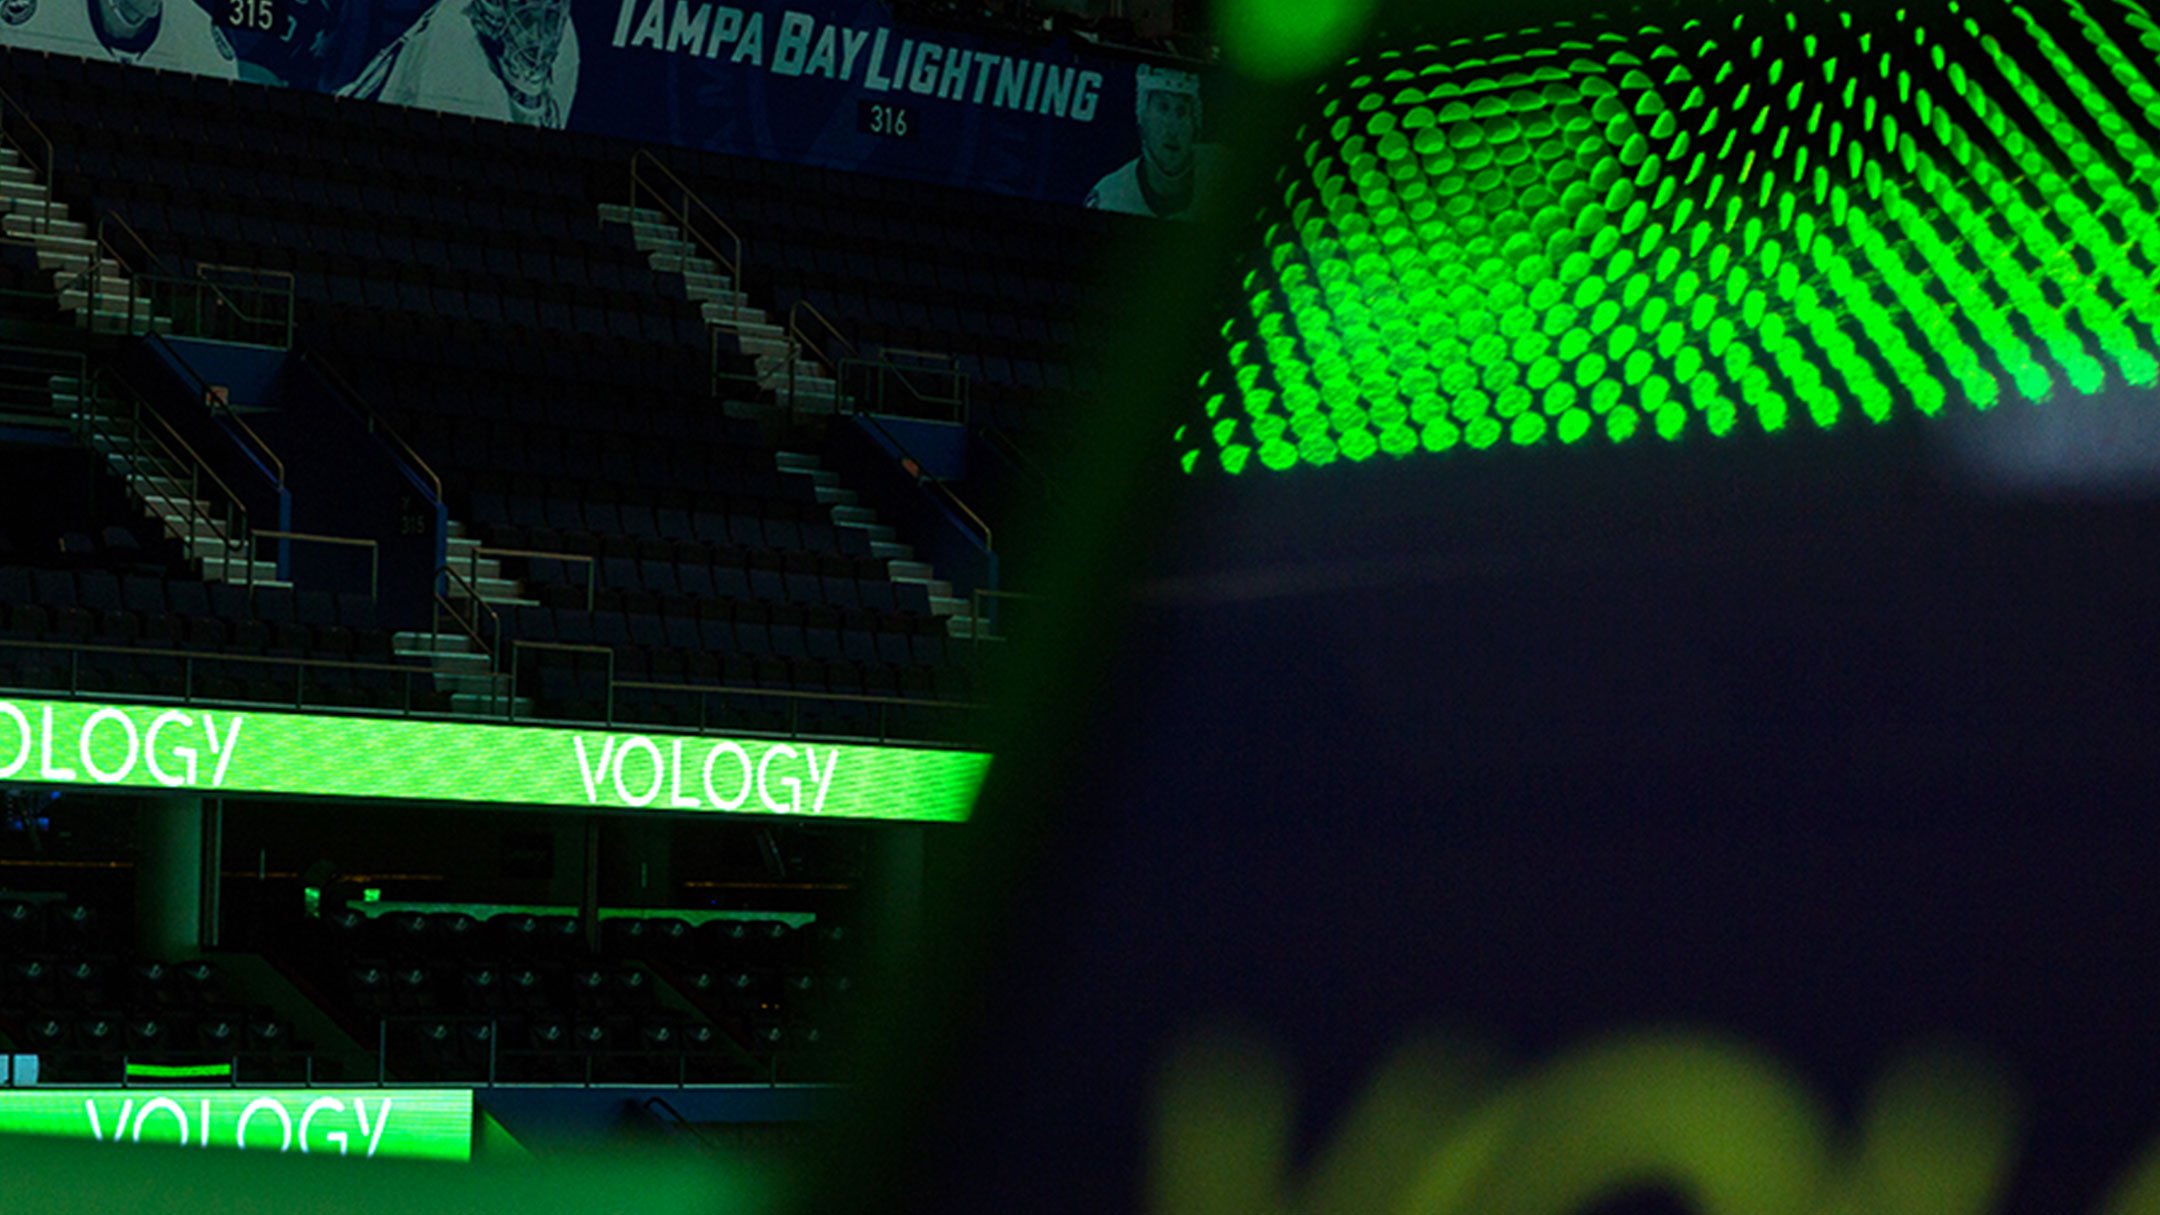 Vology banners at sports arena - an example of the updated IT marketing plan.